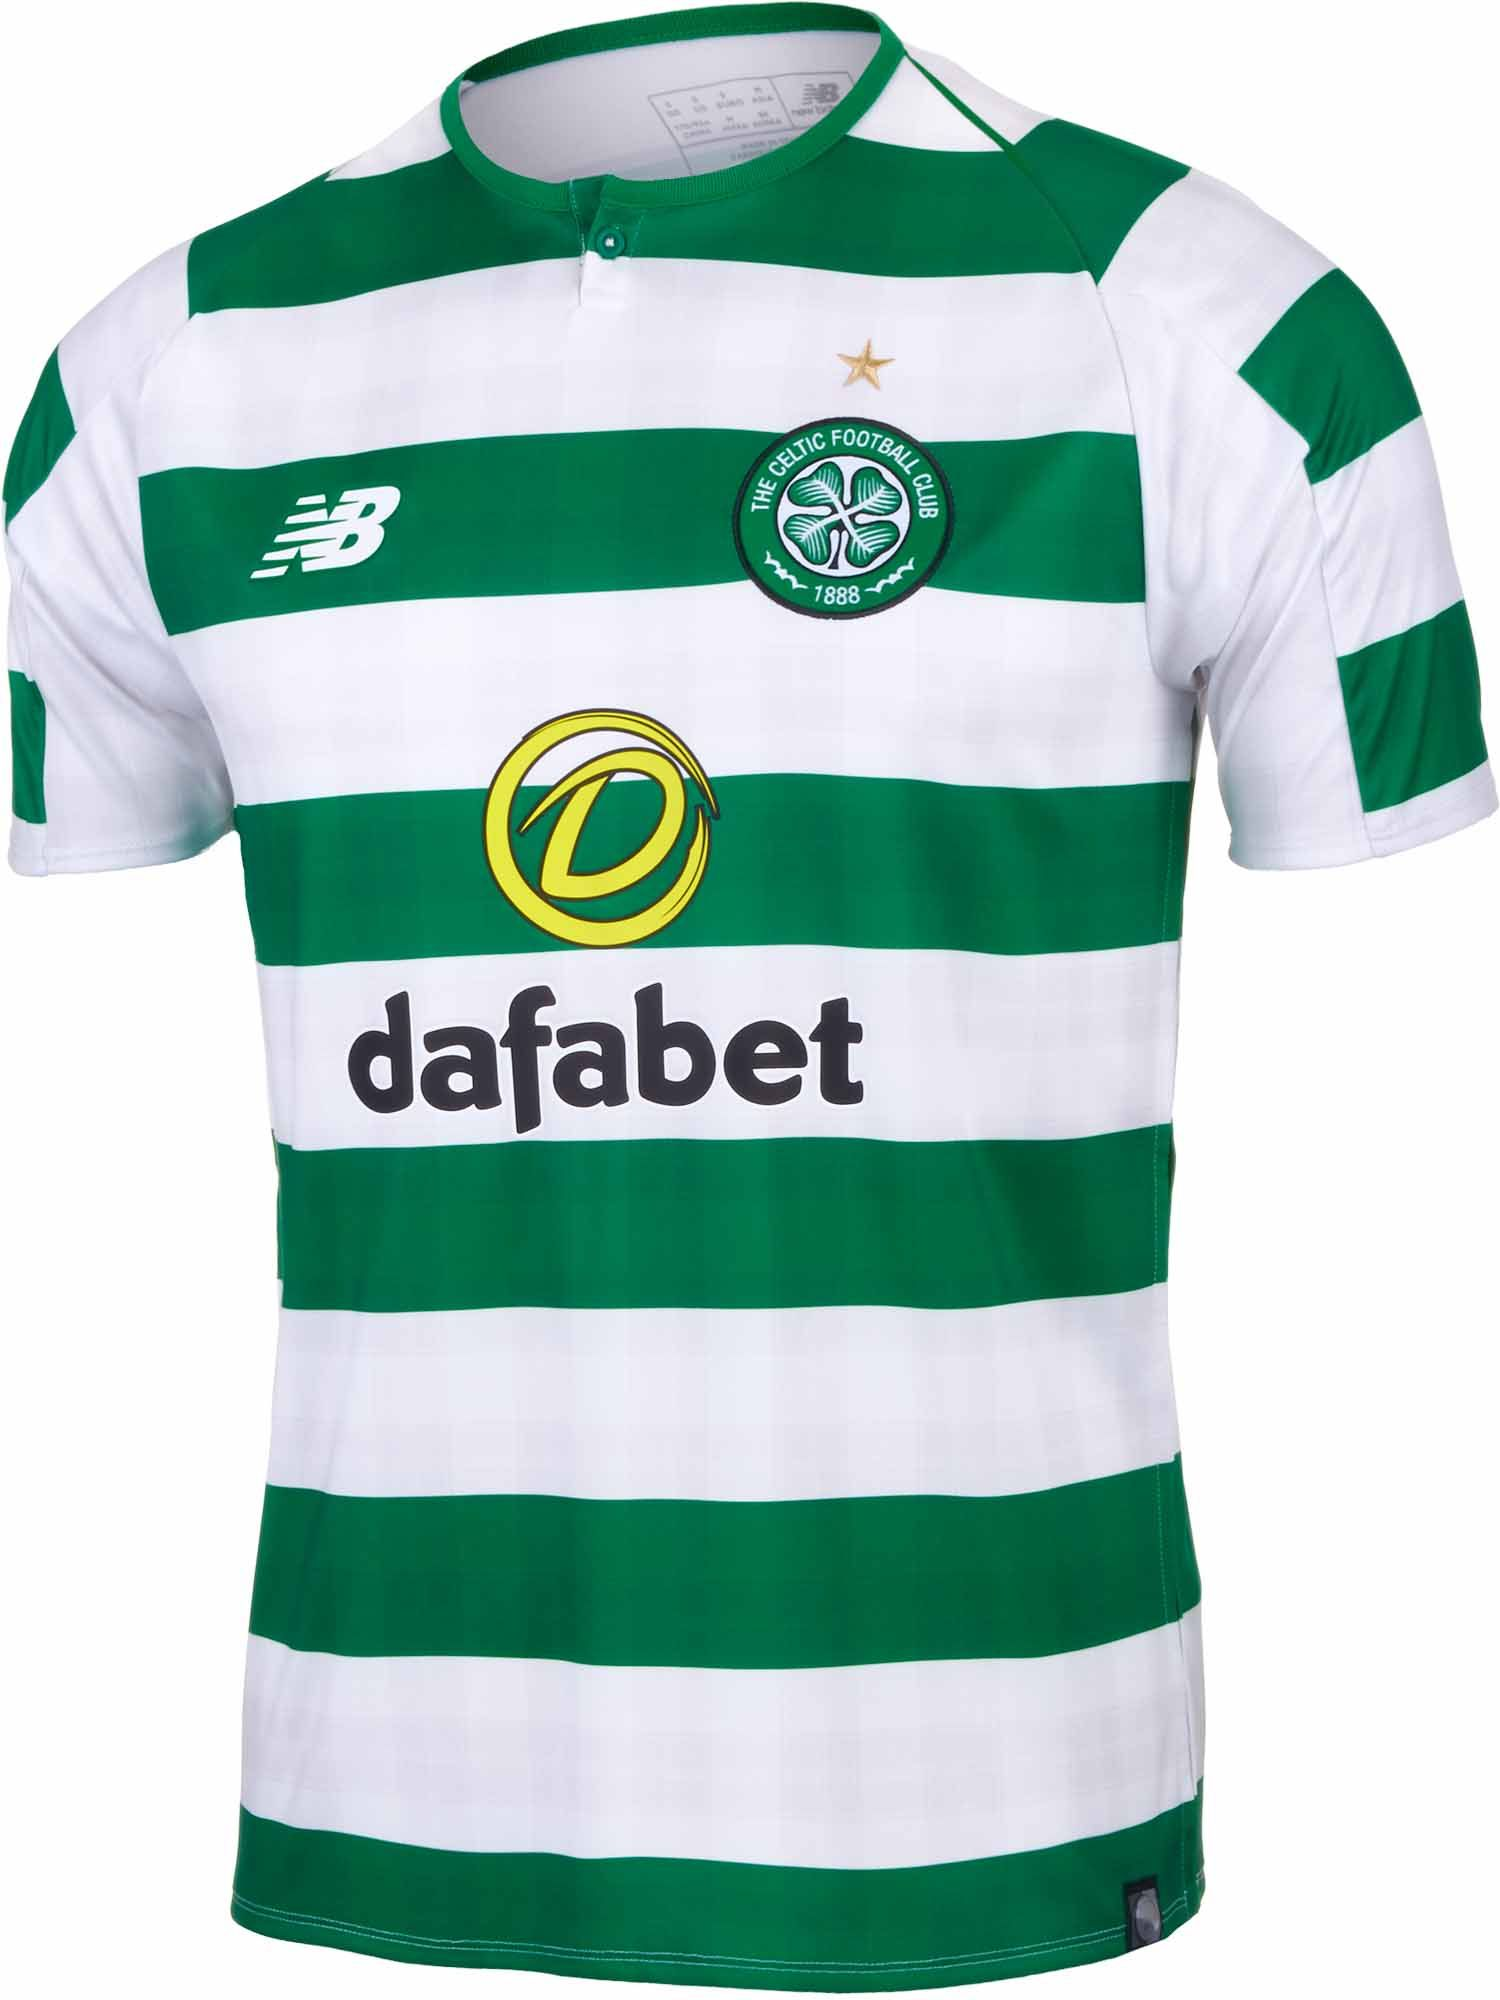 2018 19 New Balance Celtic Home Jersey. Buy yours from soccerpro.com 10219cfd9